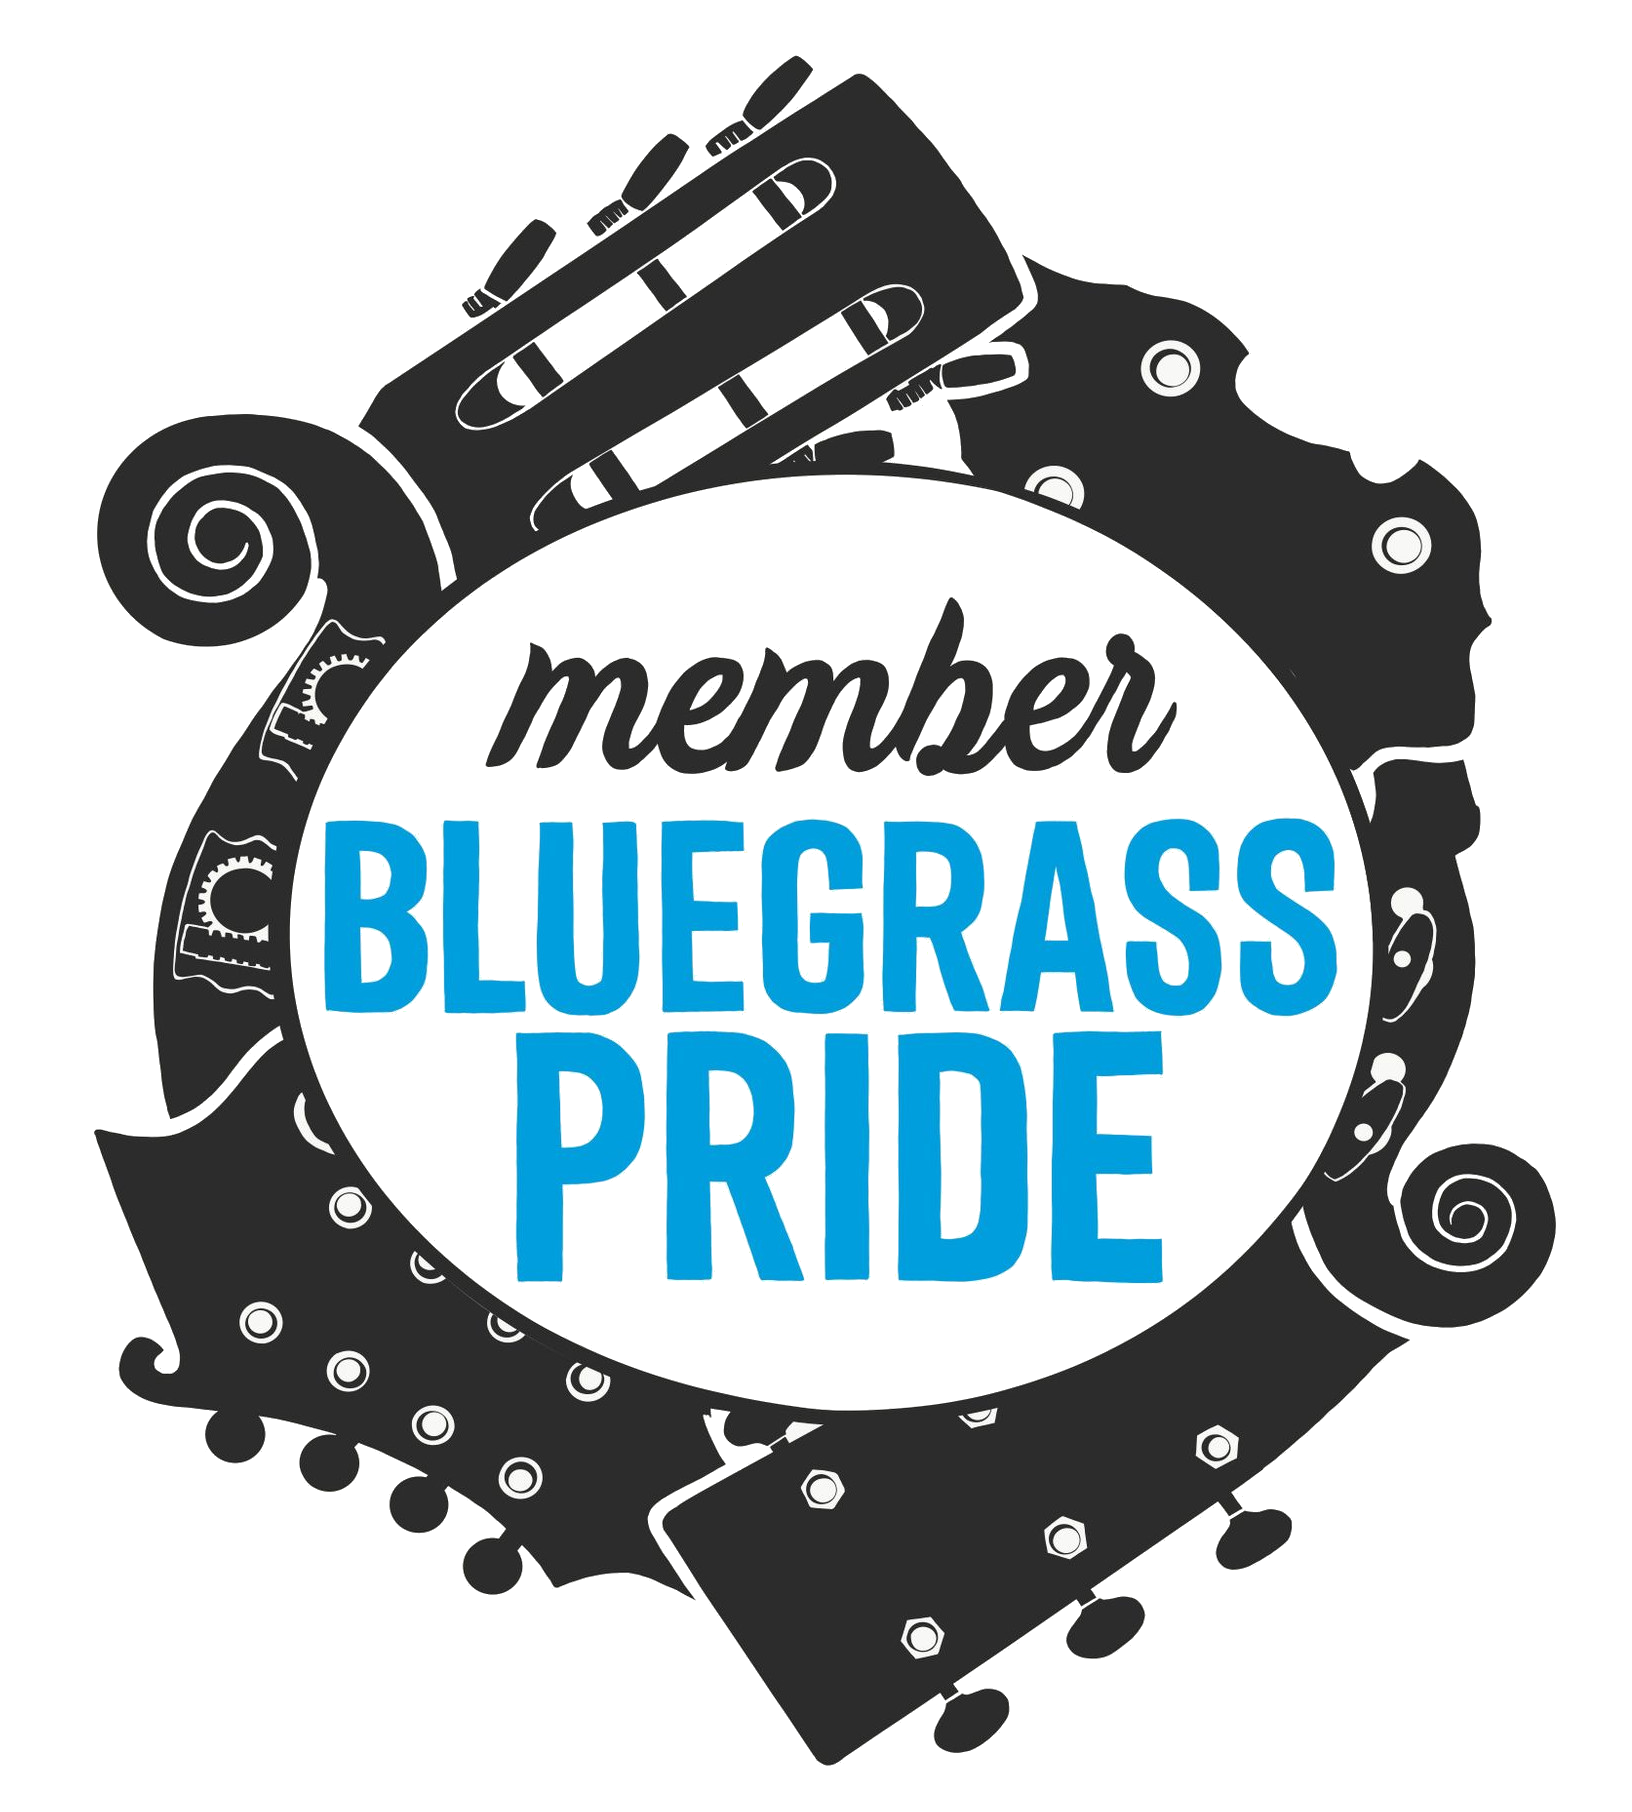 Bluegrass Pride membership graphic, featuring instrument headstocks overlapping in a circle to symbolize diversity and community. Graphic designed by Grace van't Hof.